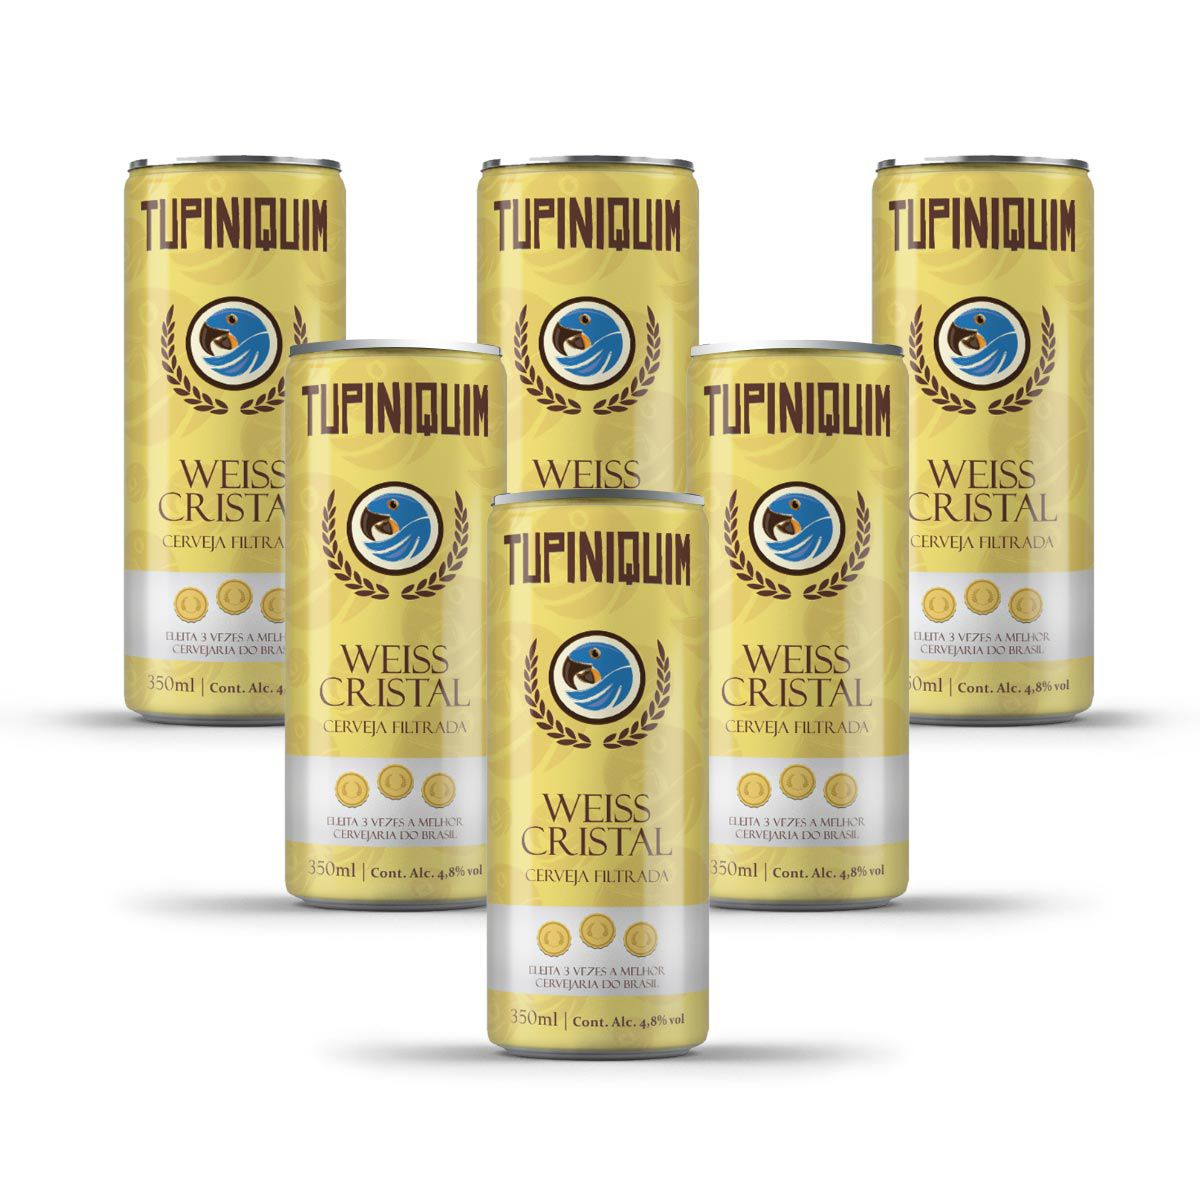 Pack Tupiniquim Weiss Cristal 6 latas 350ml